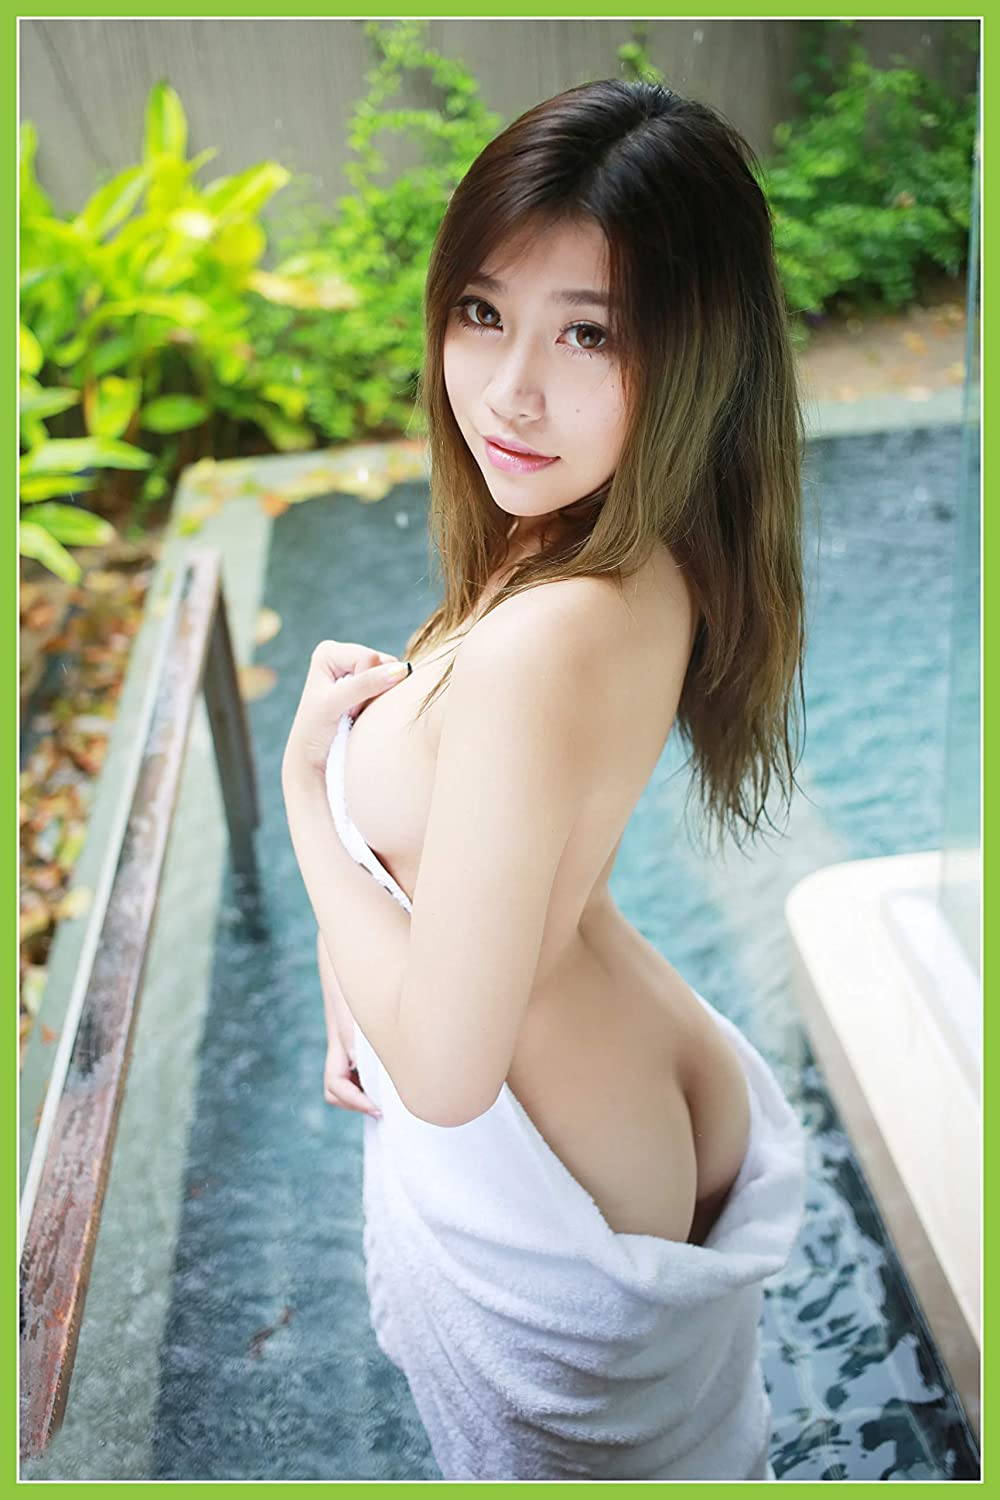 Asian beautiful girl perfect body nude image